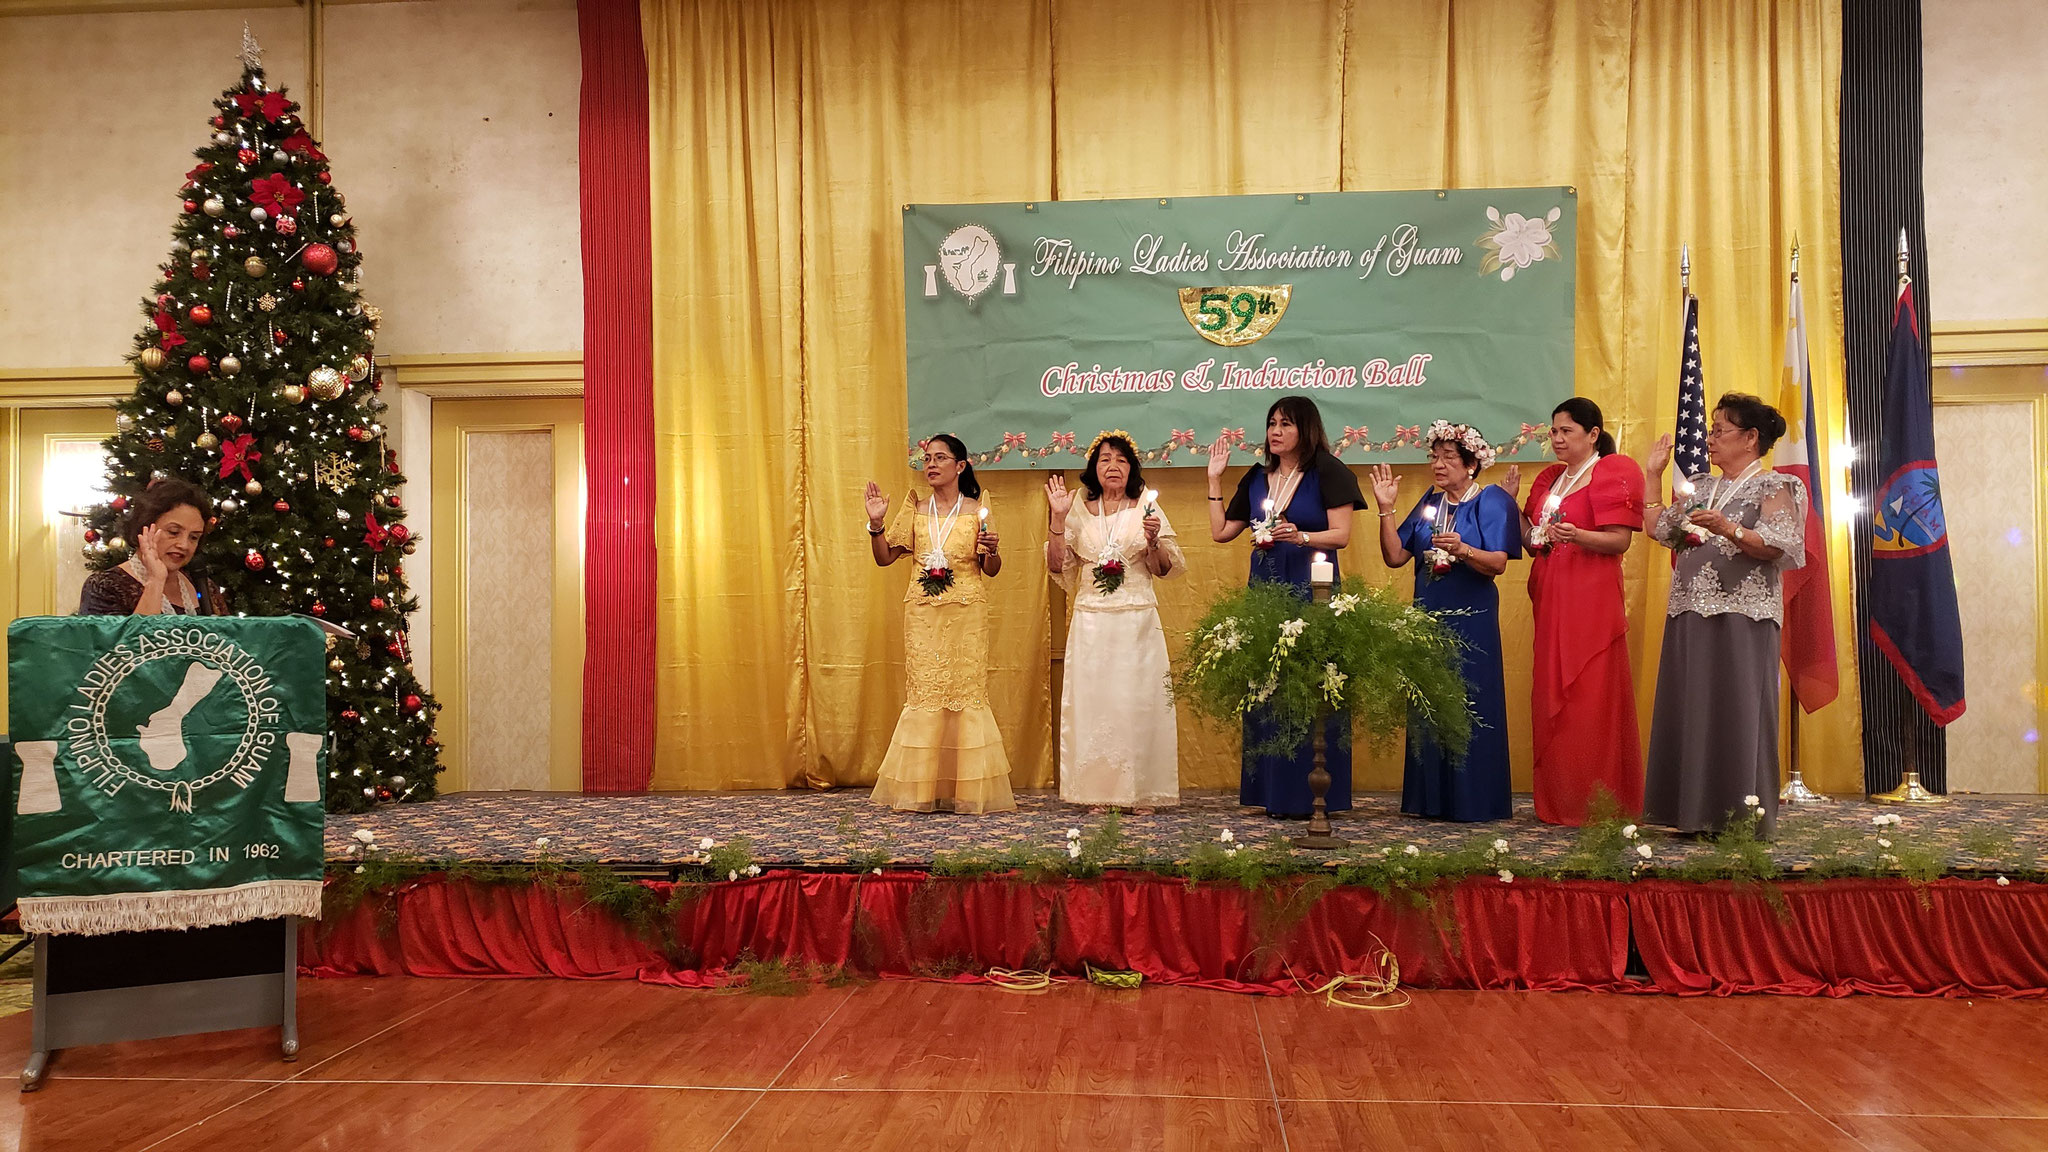 Guam Governor Lourdes Leon Guerrero (at podium) administers the oath of the 2020 executive officers of the Filipino Ladies Association of Guam during their 59th Induction and Christmas Ball. (Photo: PCG Agana)